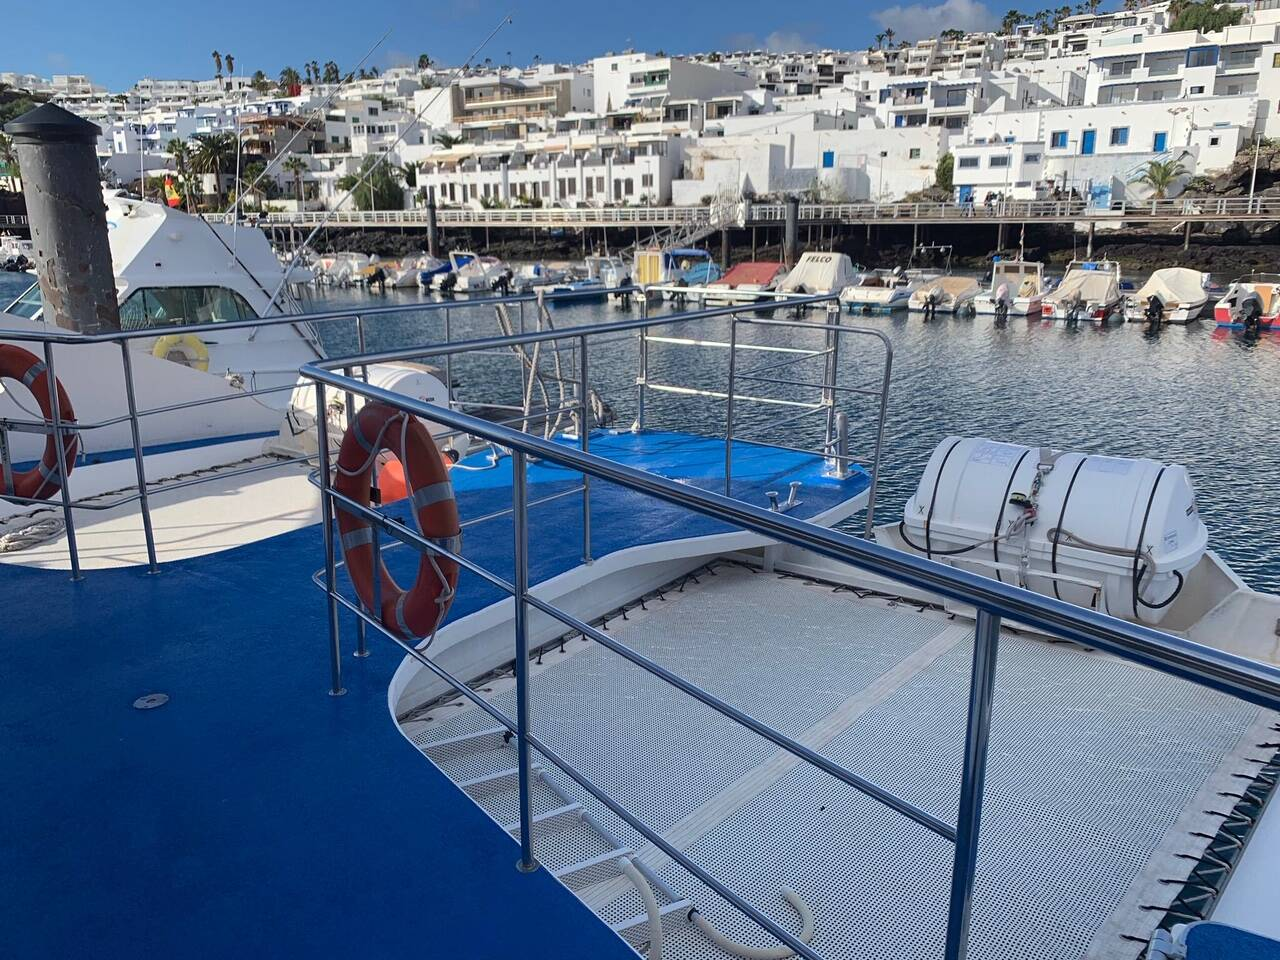 Platform view Commercial Catamaran Glass Bottom Boat for sale